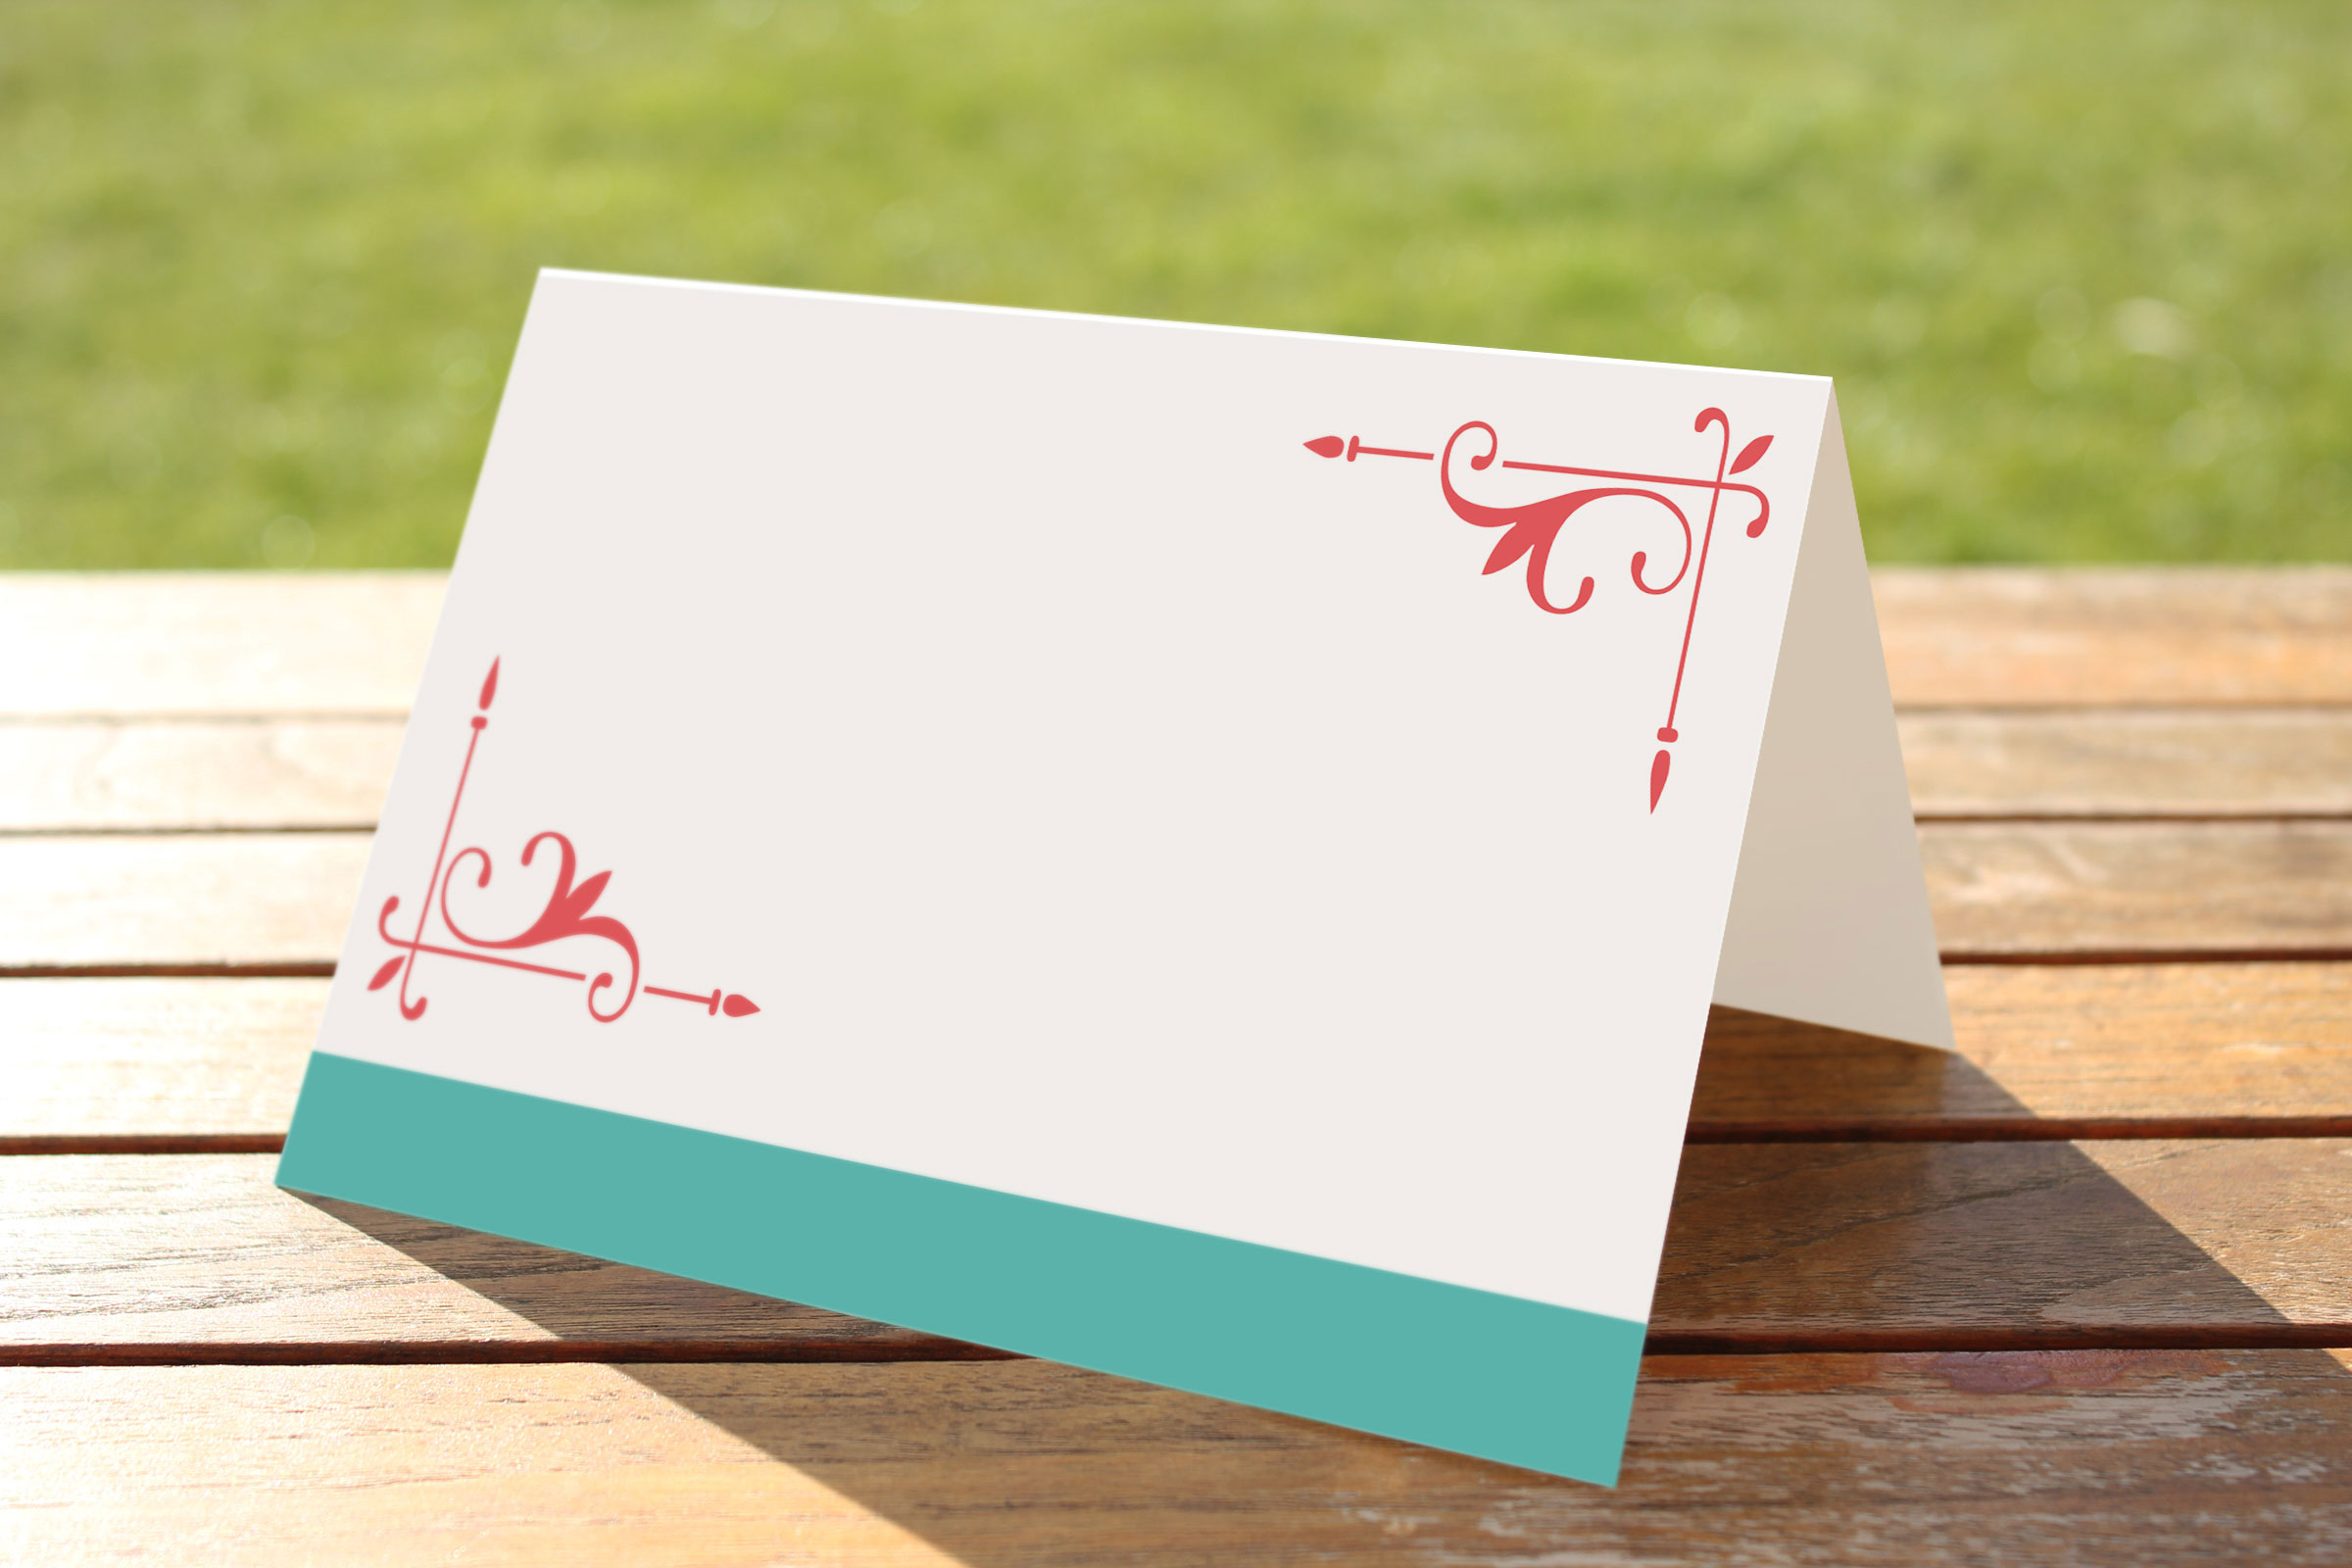 Table placename cards - set of 48 £4.50